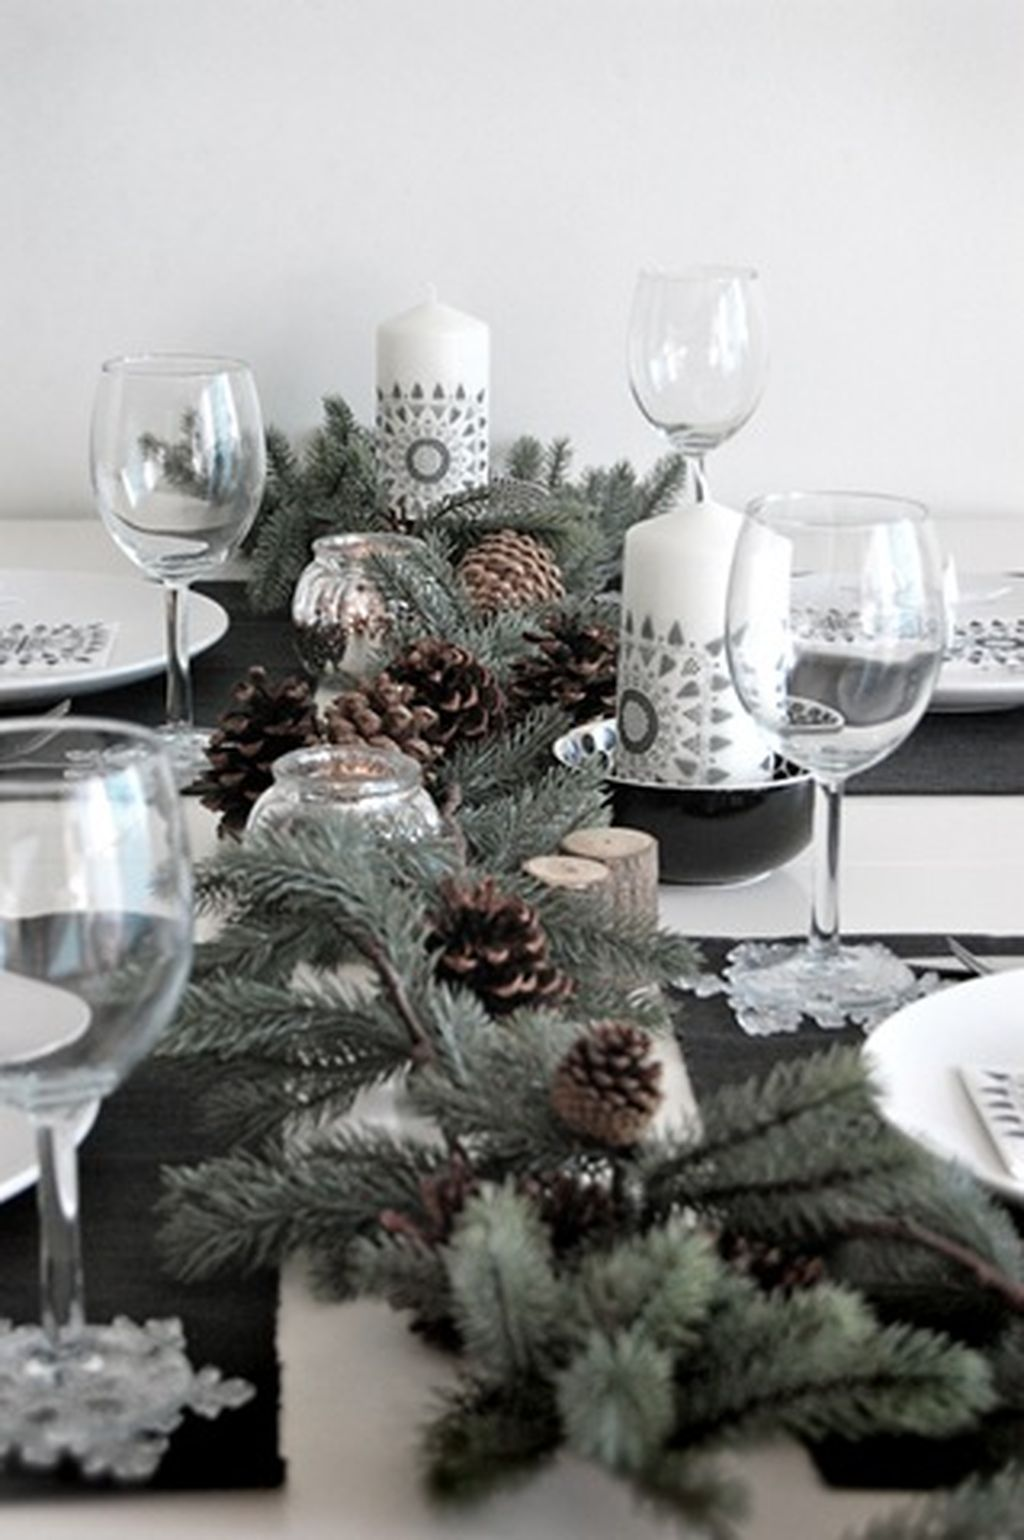 Inspiring Modern Rustic Christmas Centerpieces Ideas With Candles 87